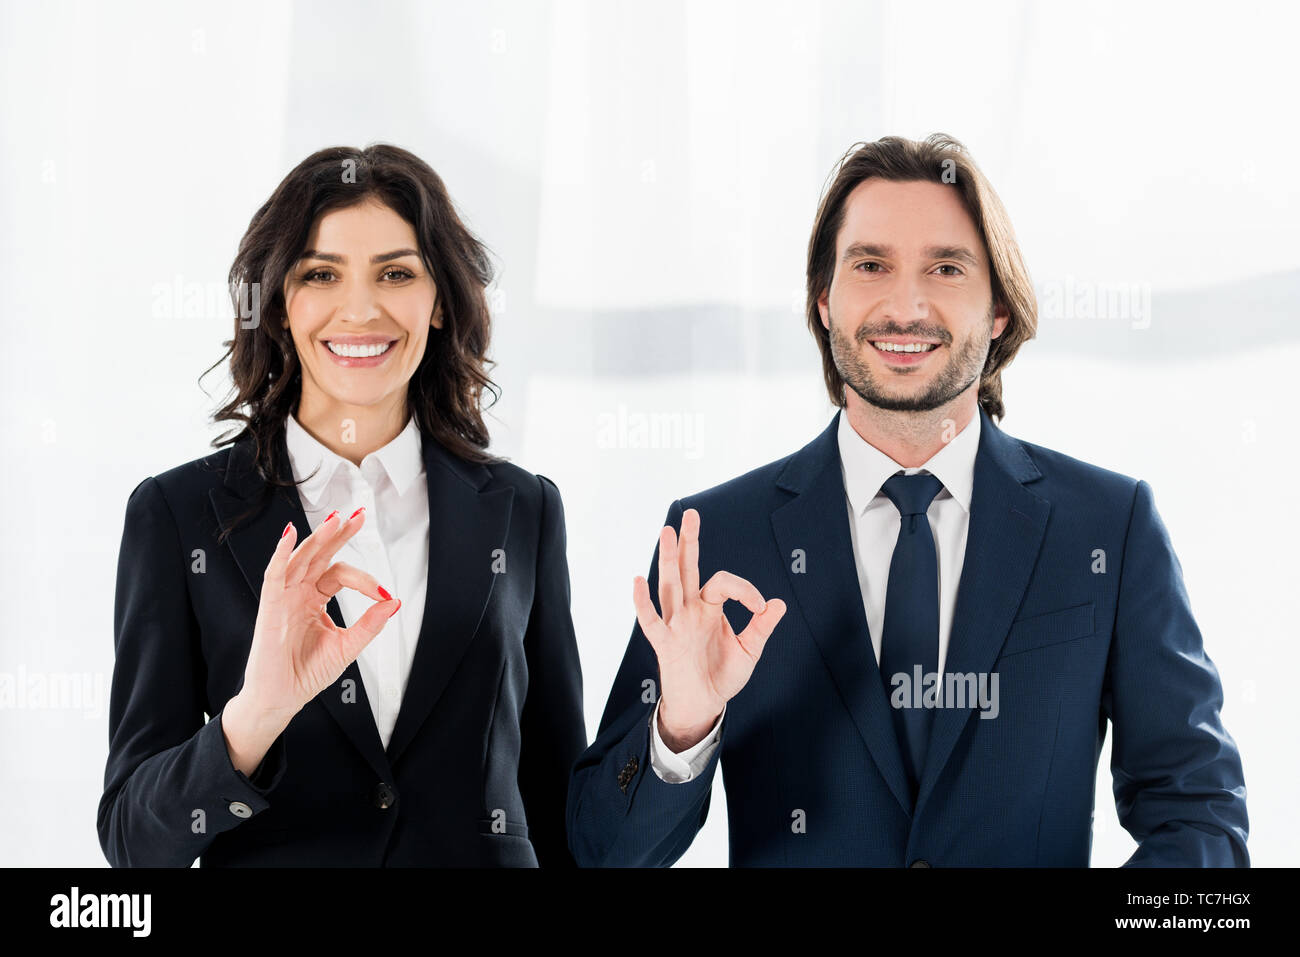 cheerful recruiters smiling while showing ok signs and looking at camera Stock Photo